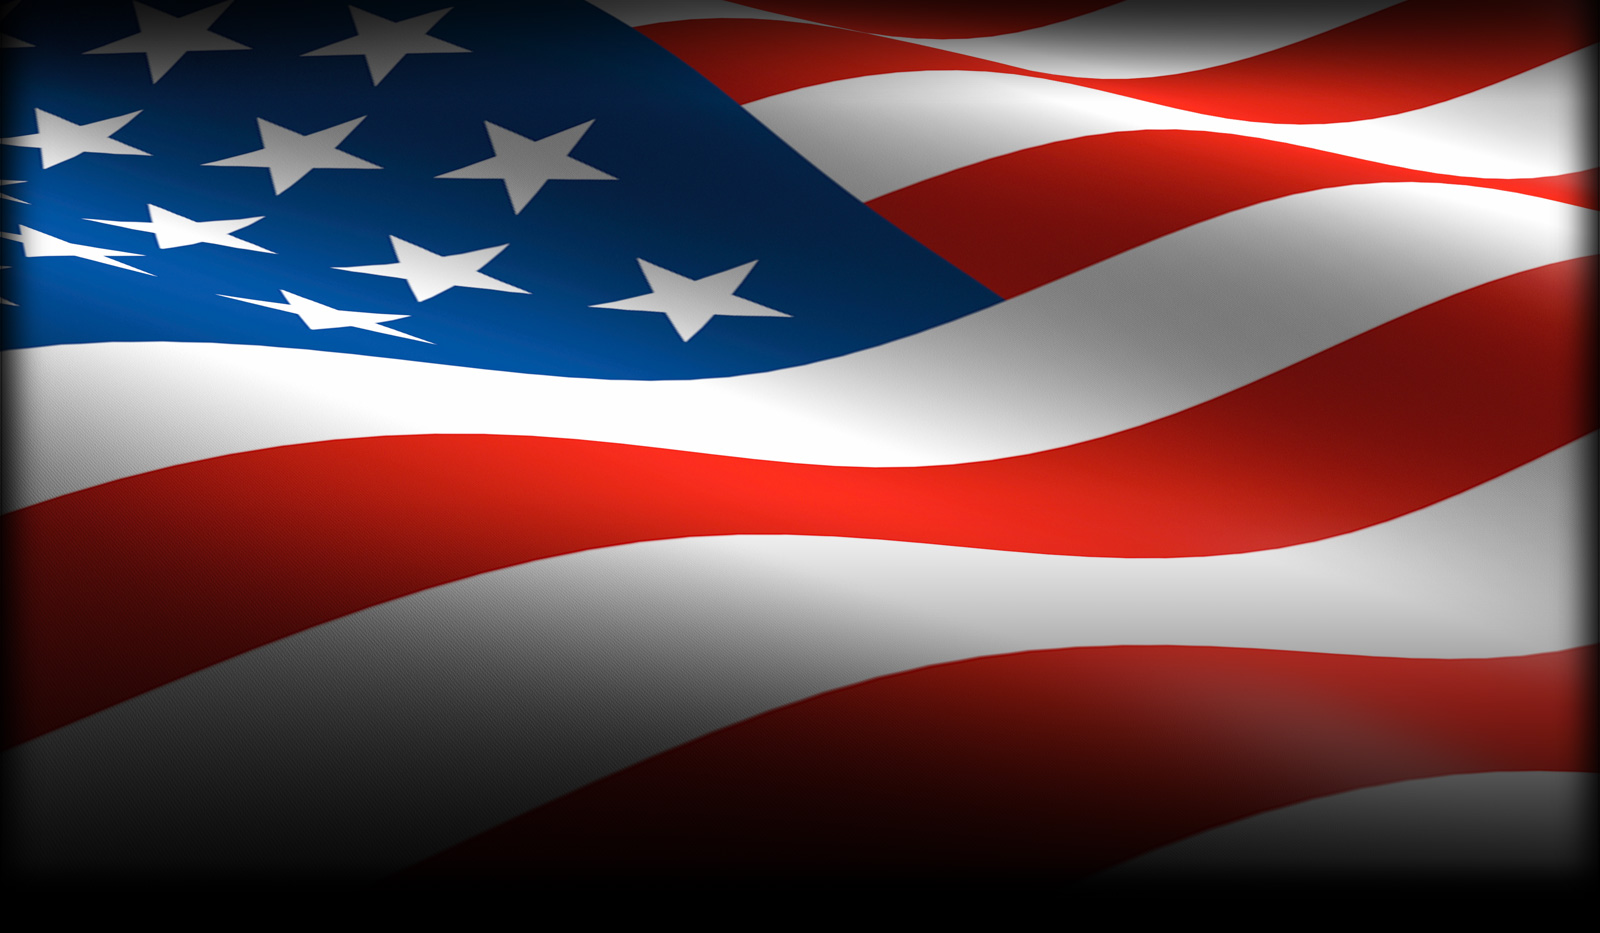 American Flag Background Image